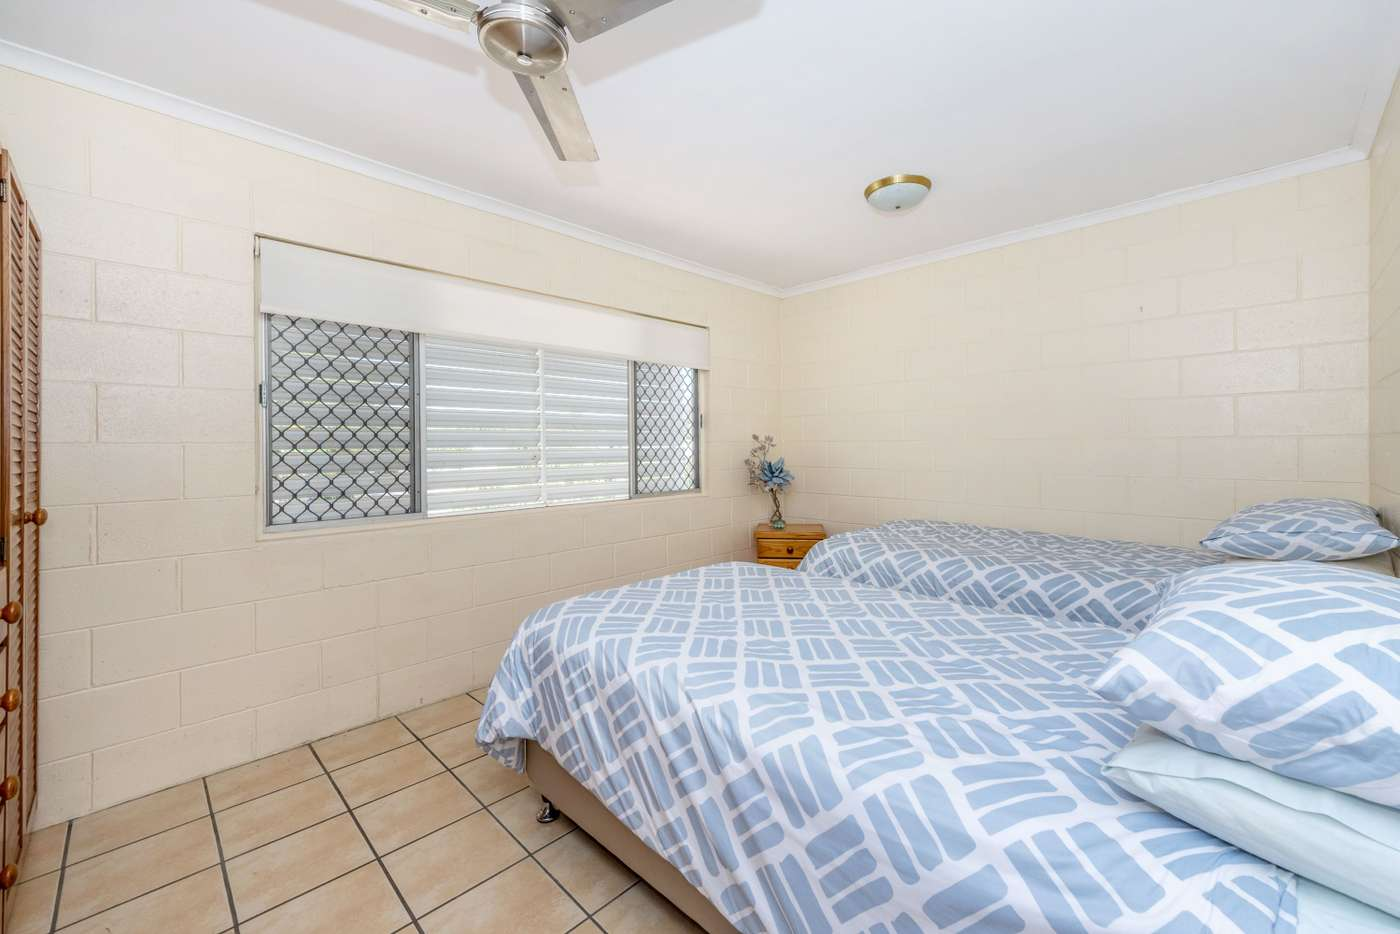 Sixth view of Homely unit listing, 5/157 Mitchell Street, North Ward QLD 4810